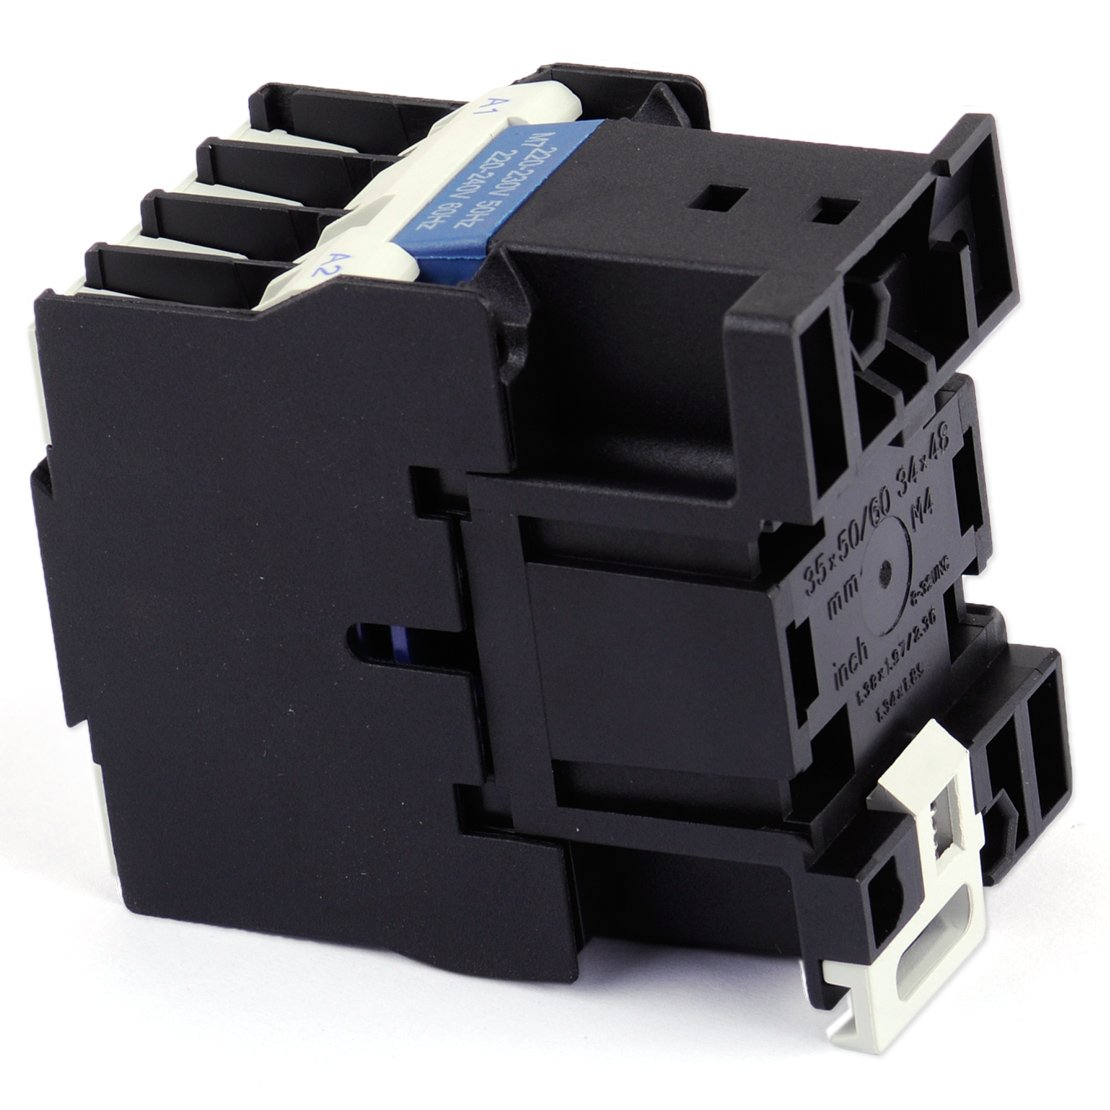 Power AC Contactor 1NO AC 220V M7 50 60Hz Coil Motor Starter Relay 32A 3 Phase Pole